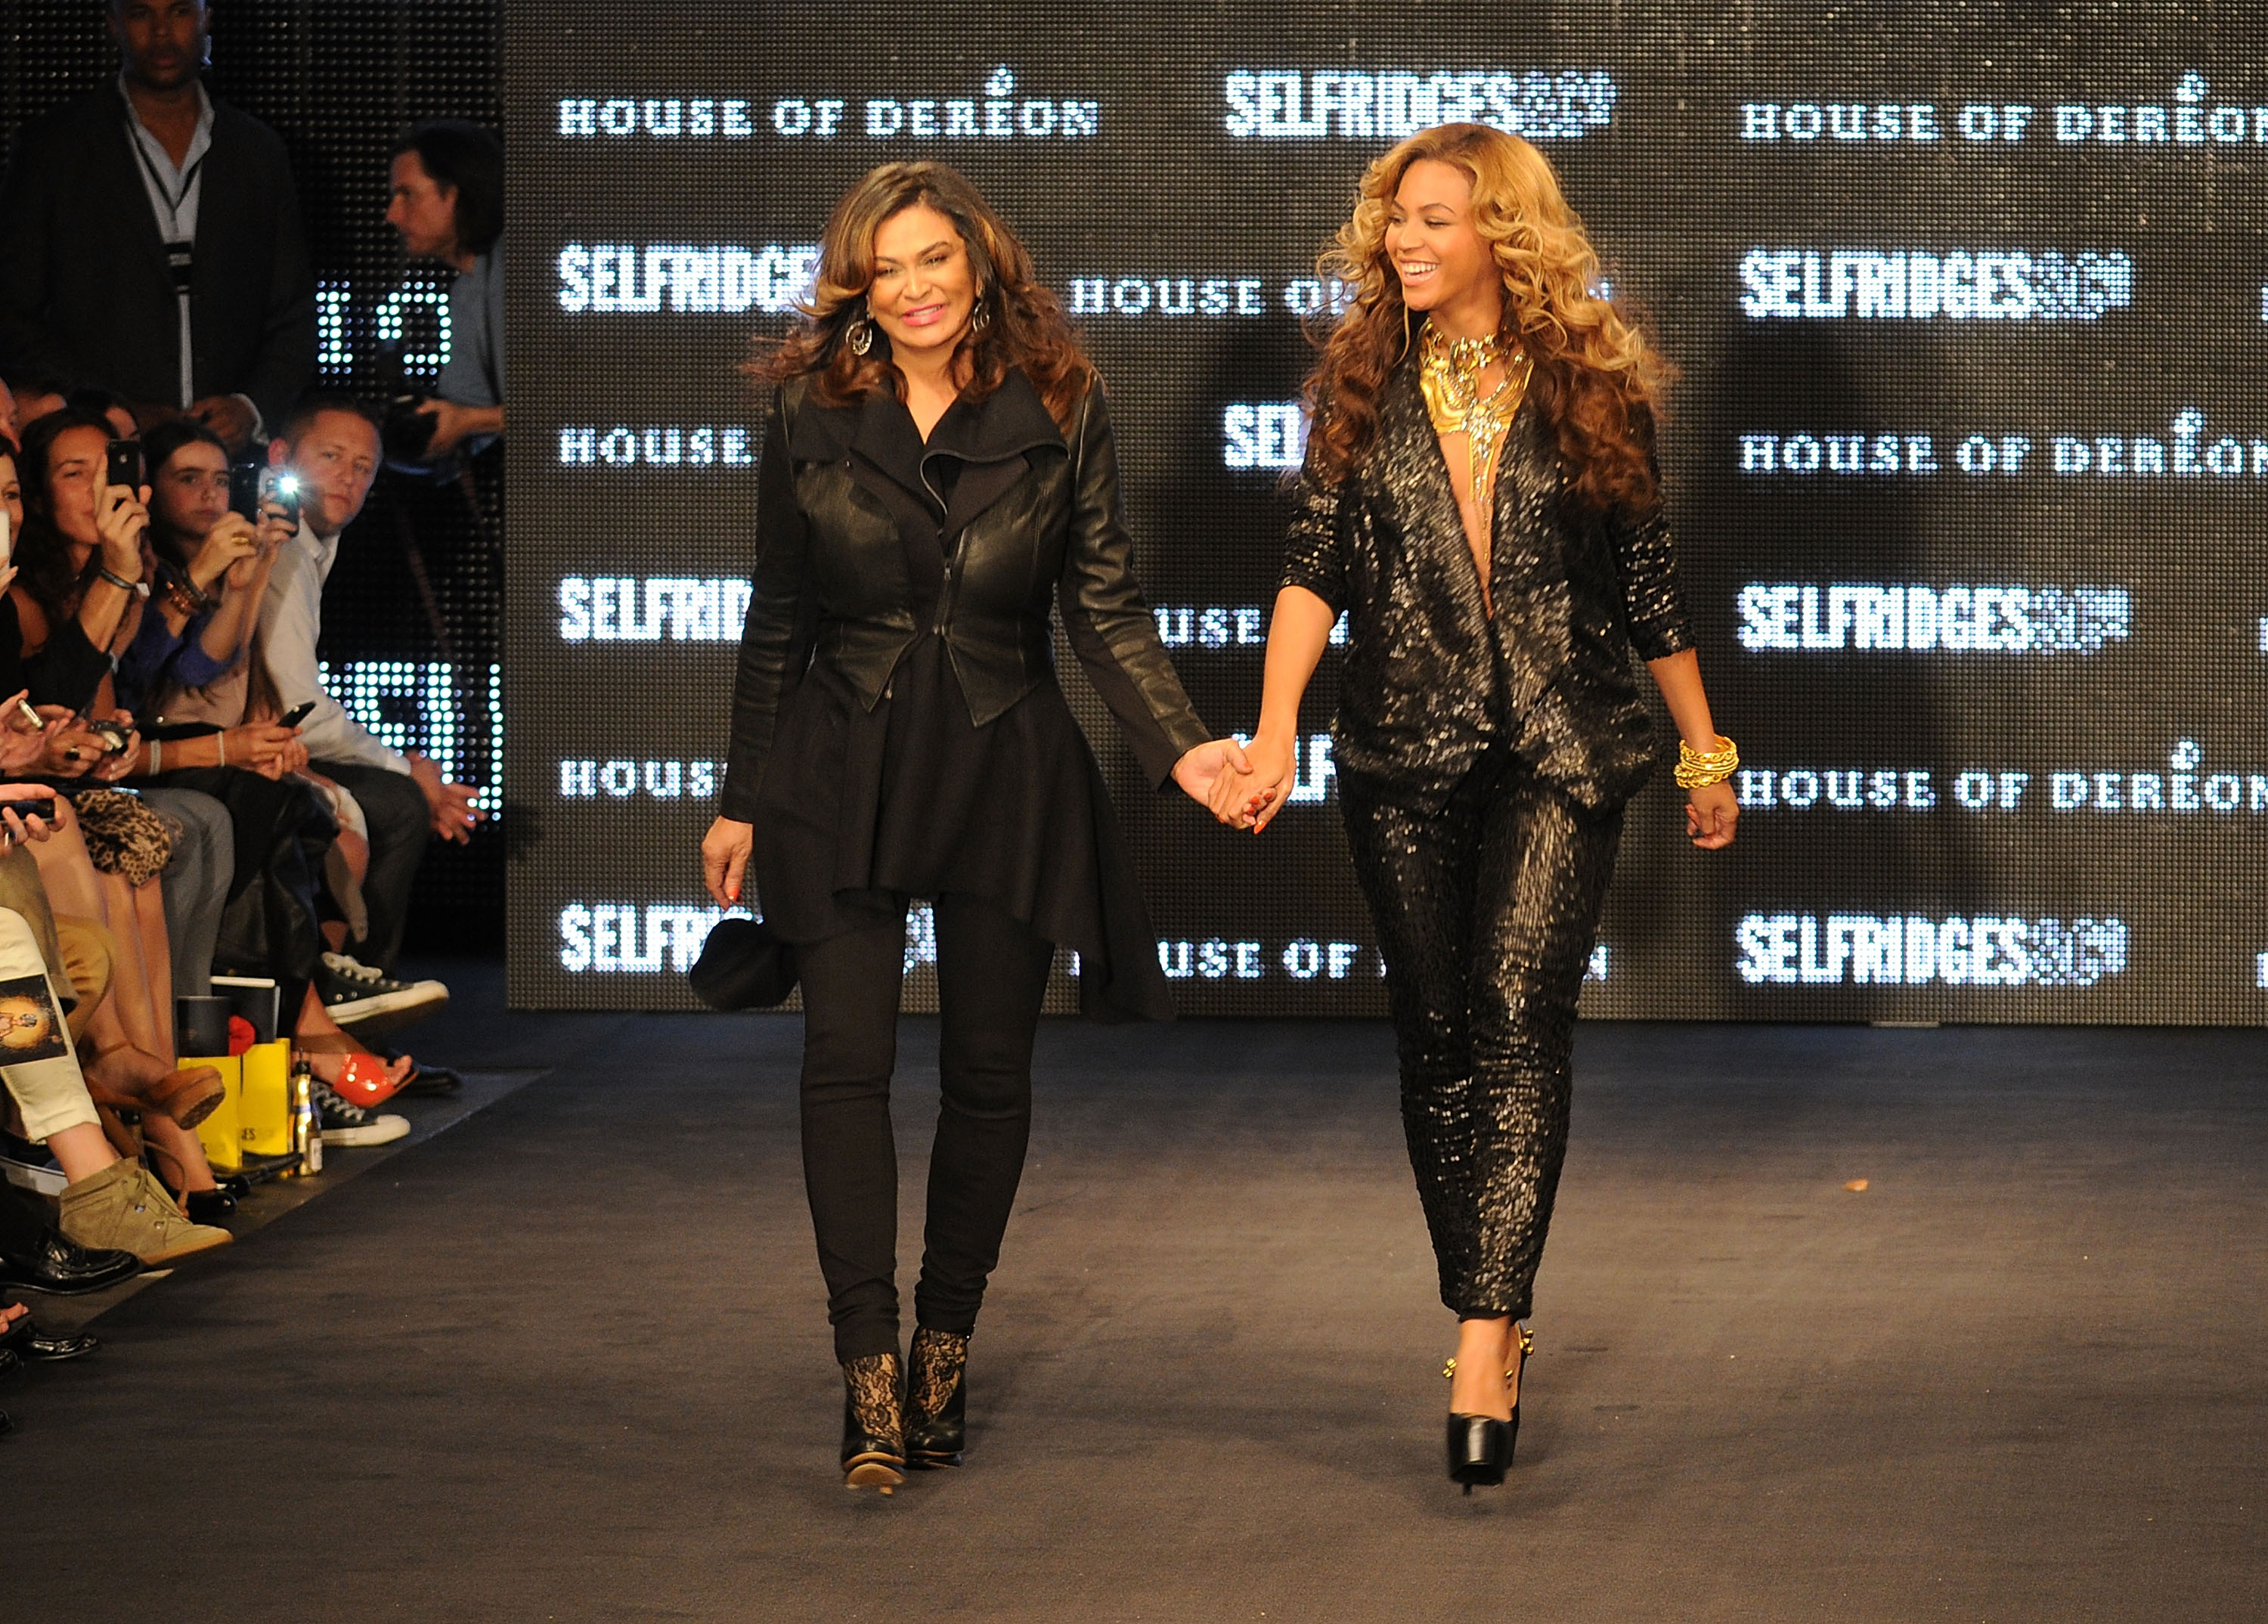 LONDON, ENGLAND - SEPTEMBER 17:  Tina Knowles and Beyonce Knowles at The Launch Of House Of Dereon By Beyonce And Tina Knowles at Selfridges on September 17, 2011 in London, England.  (Photo by Eamonn McCormack/Getty Images)